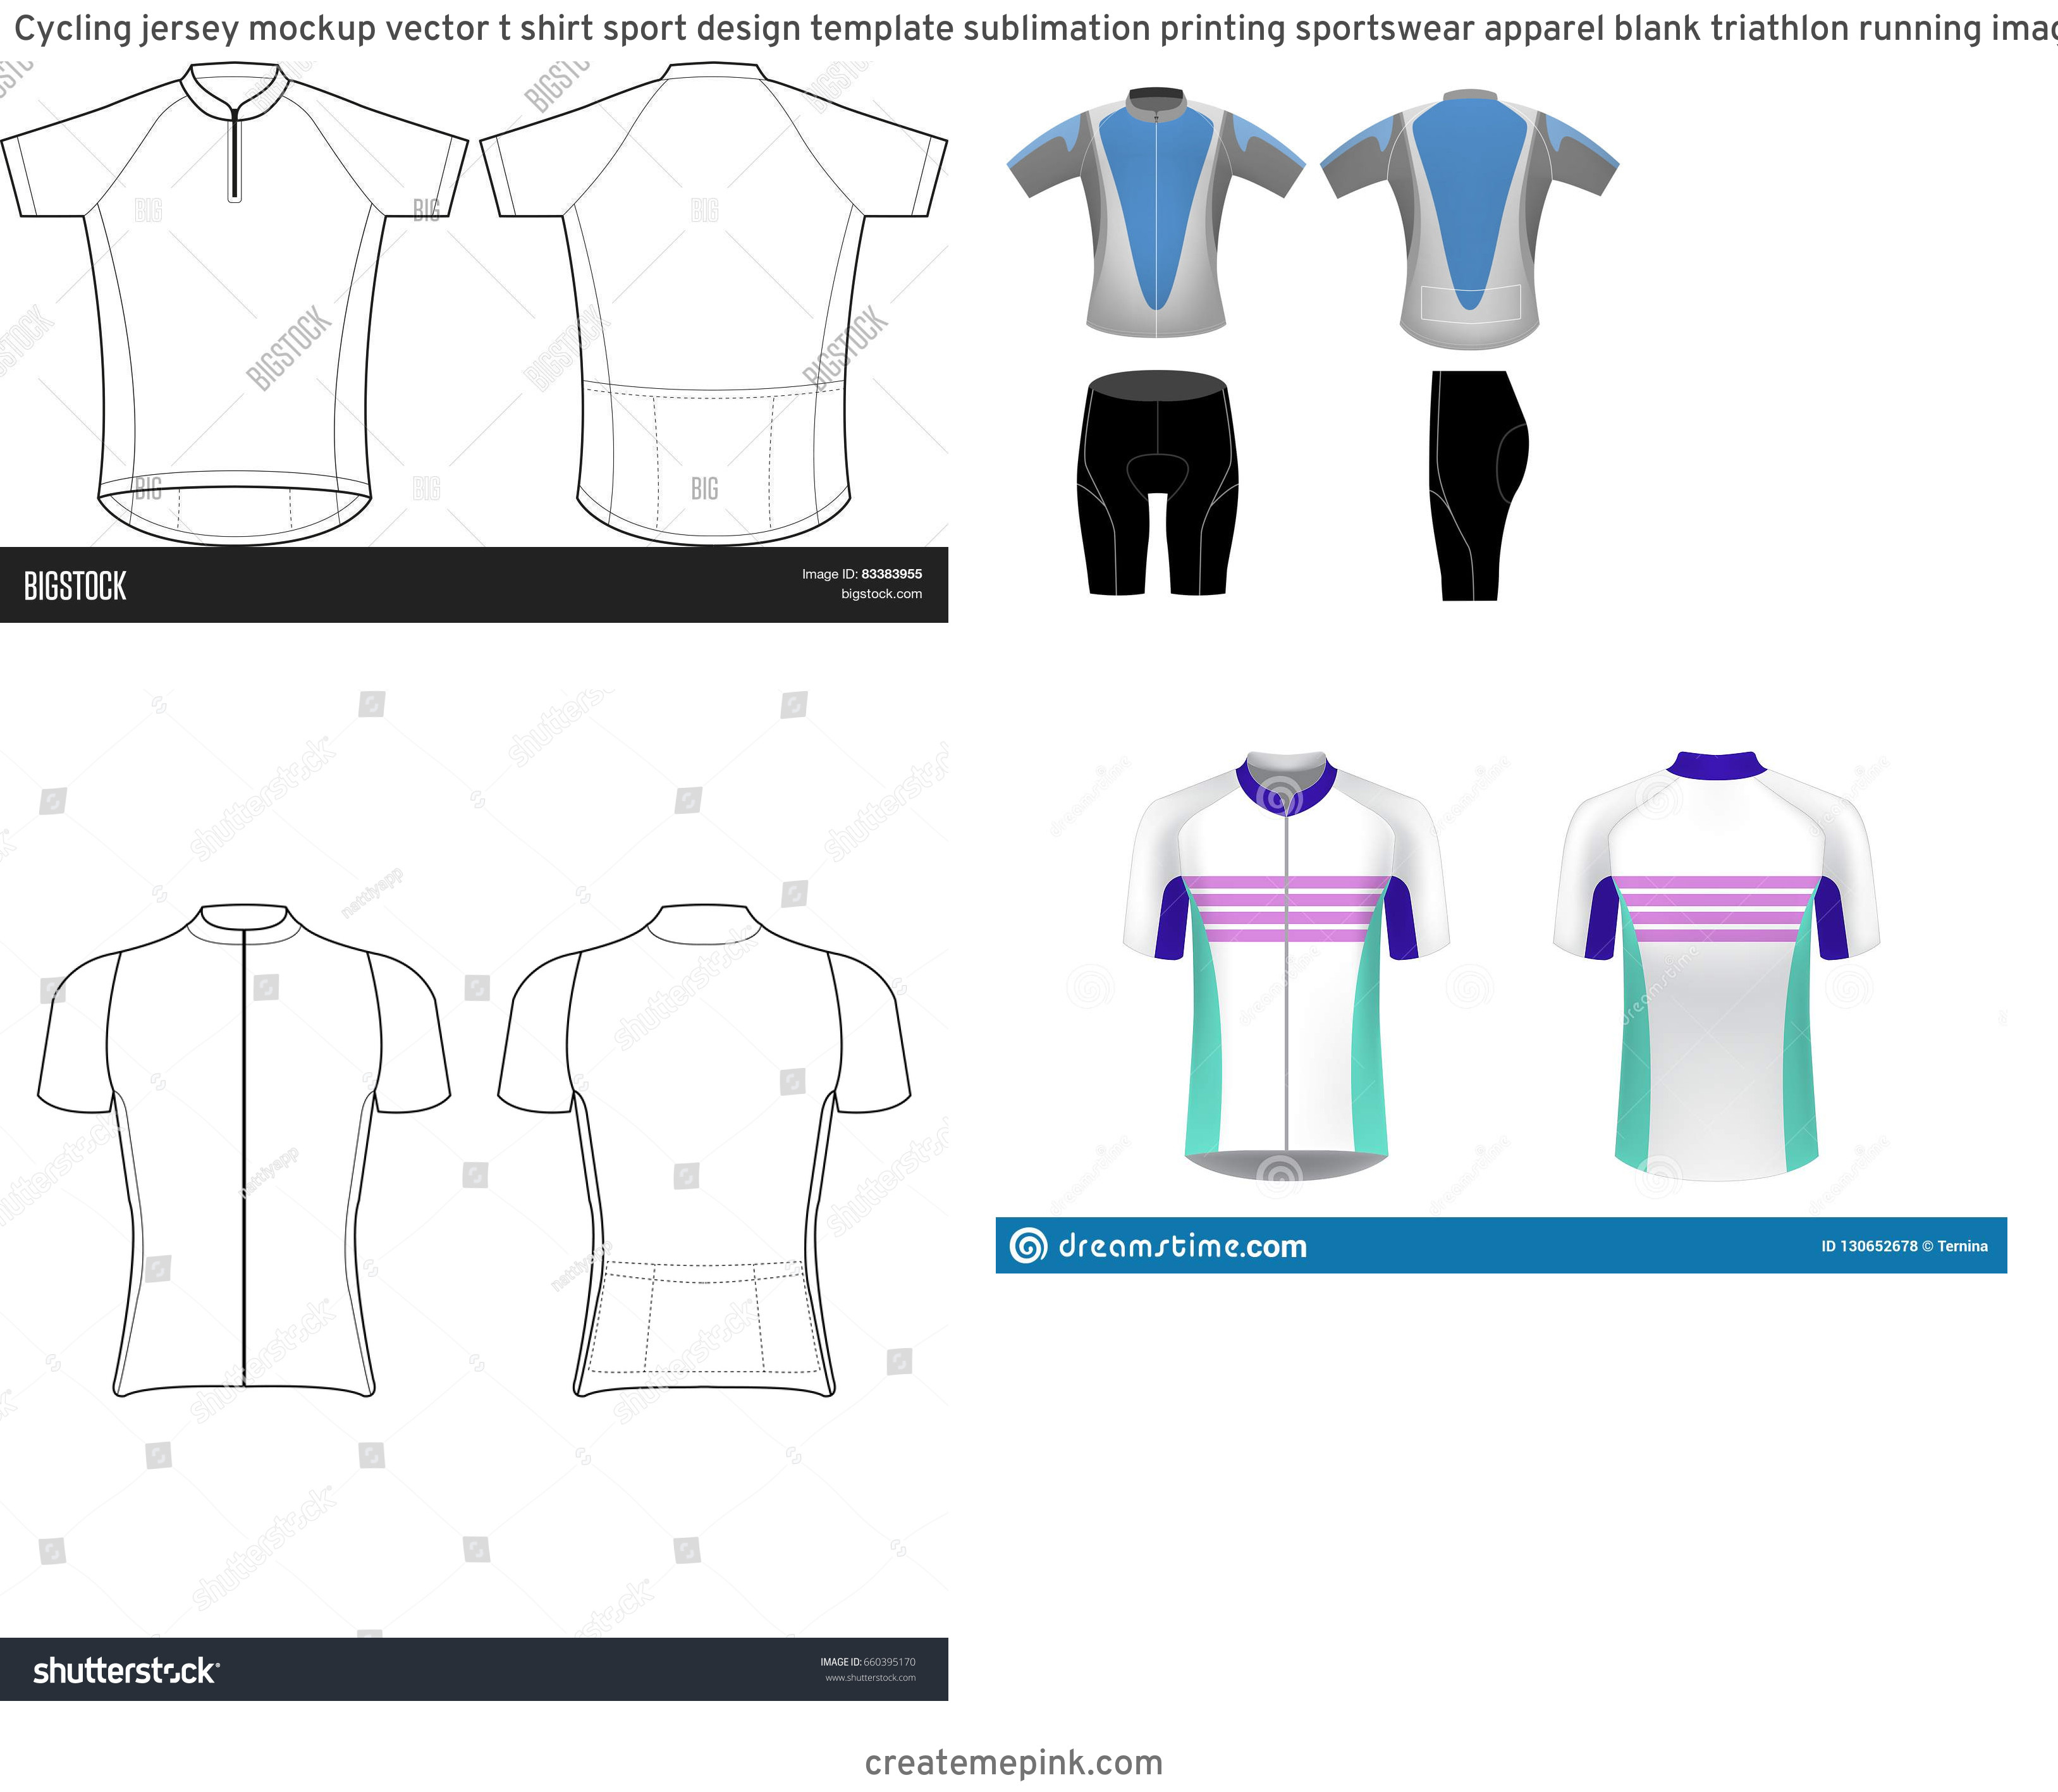 Cycling Kit Template Vector: Cycling Jersey Mockup Vector T Shirt Sport Design Template Sublimation Printing Sportswear Apparel Blank Triathlon Running Image